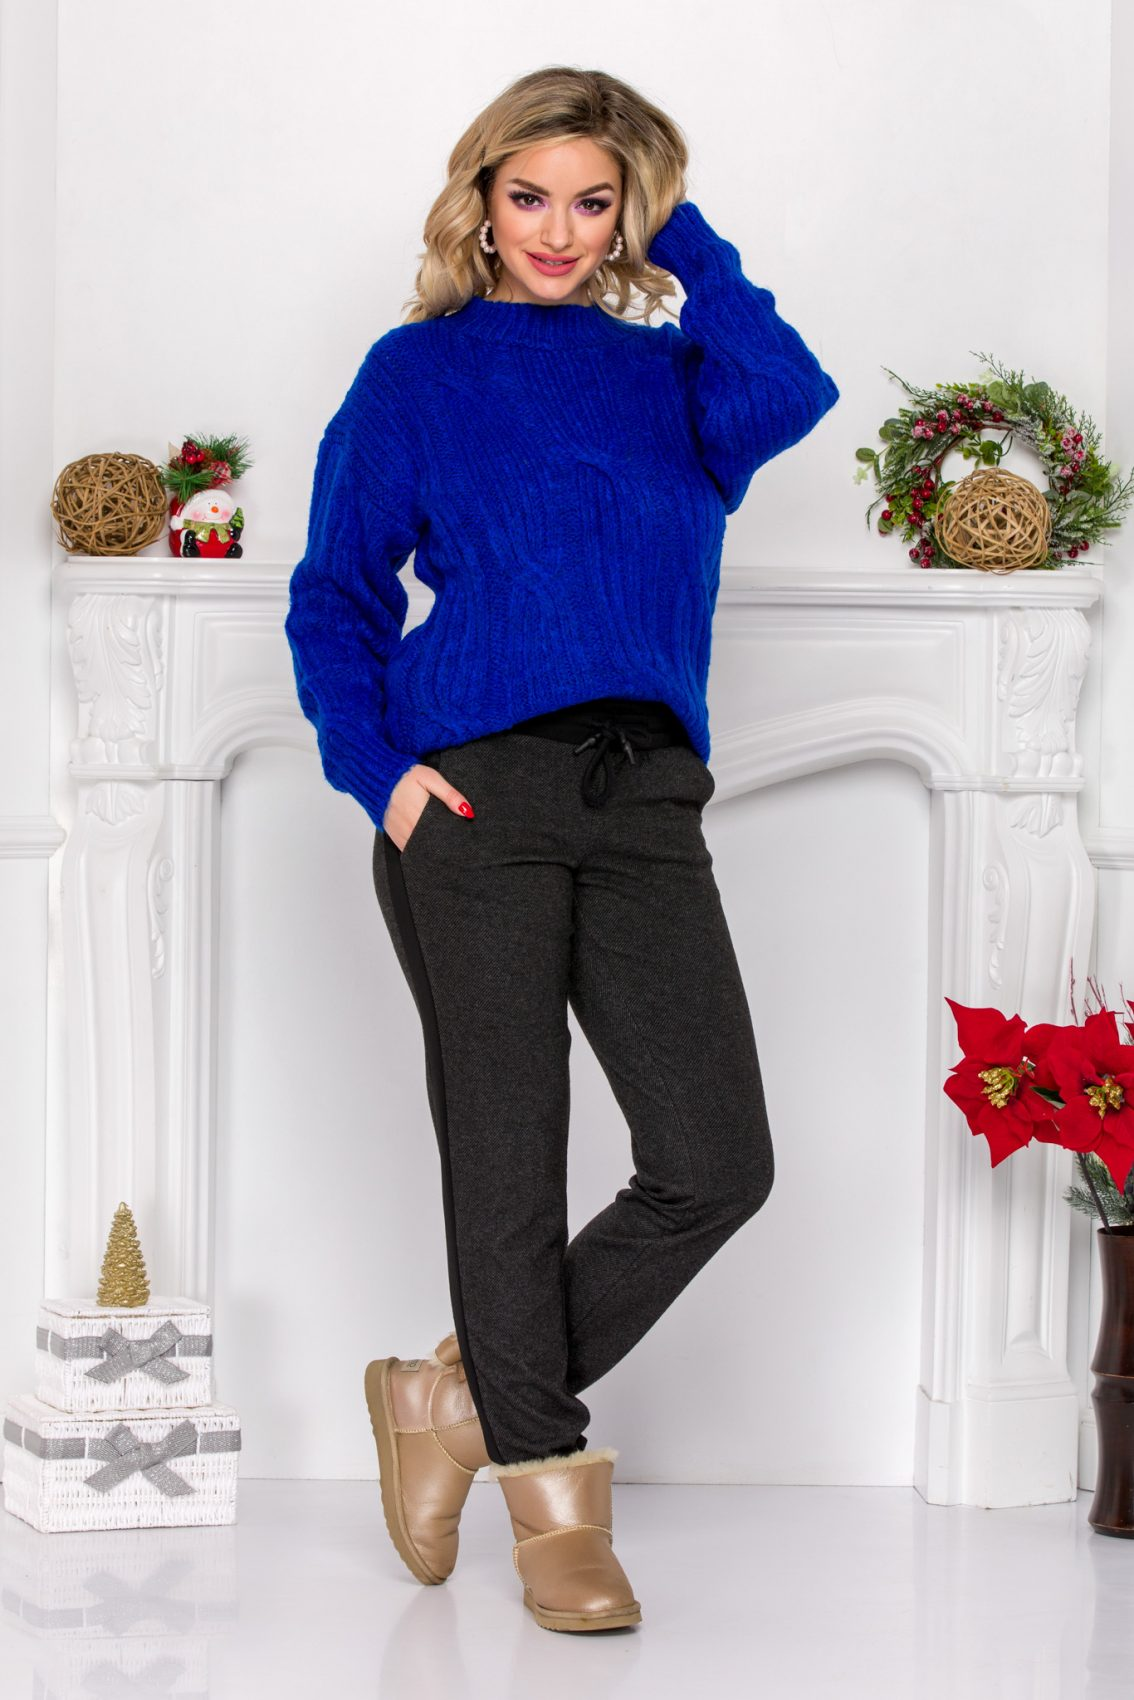 Kevo Blue Sweater